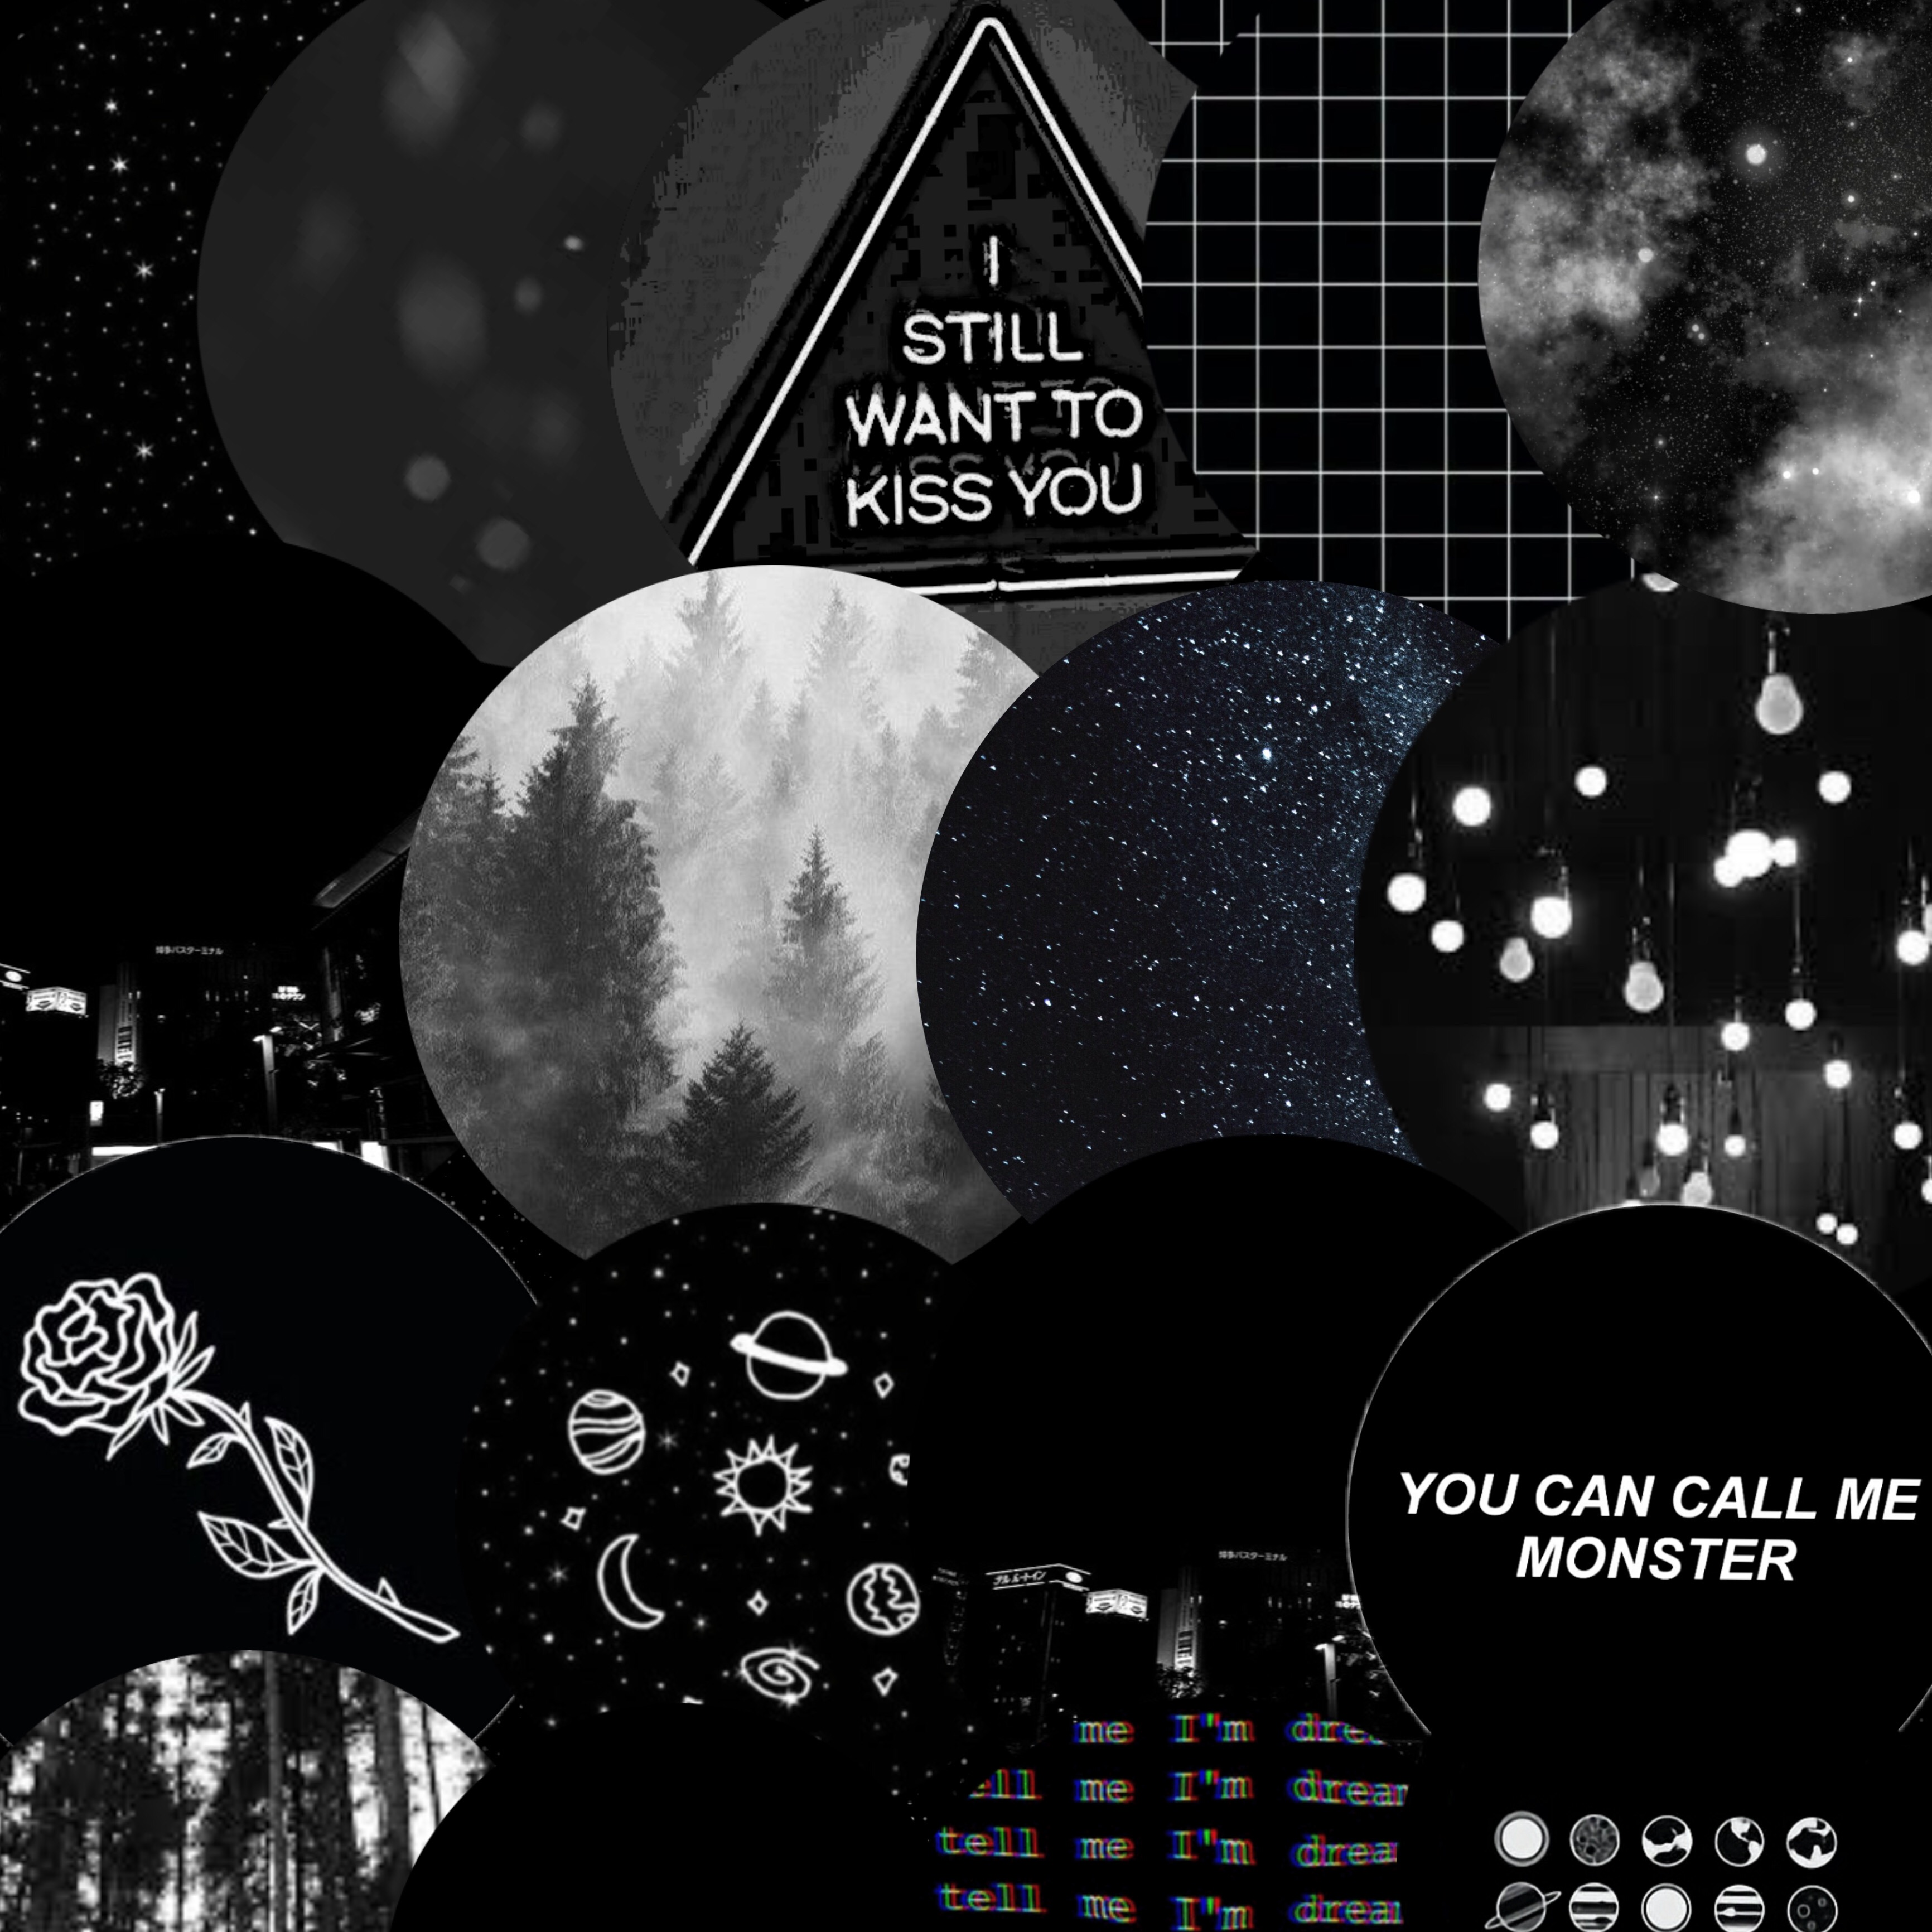 Black And White Aesthetic Background Collage